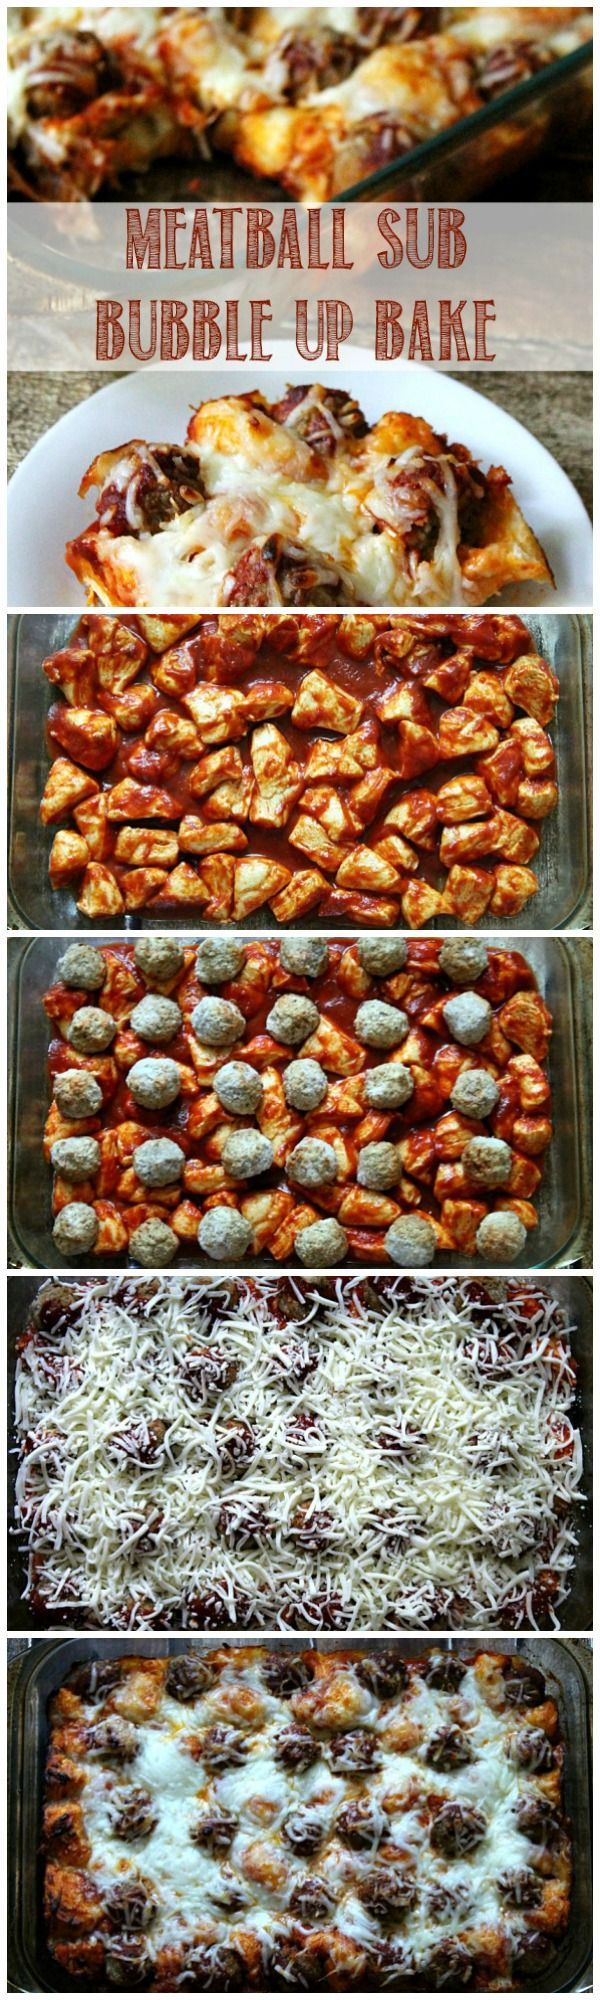 4-ingredient Meatball Sub Bubble Up Bake for weeknight dinner!